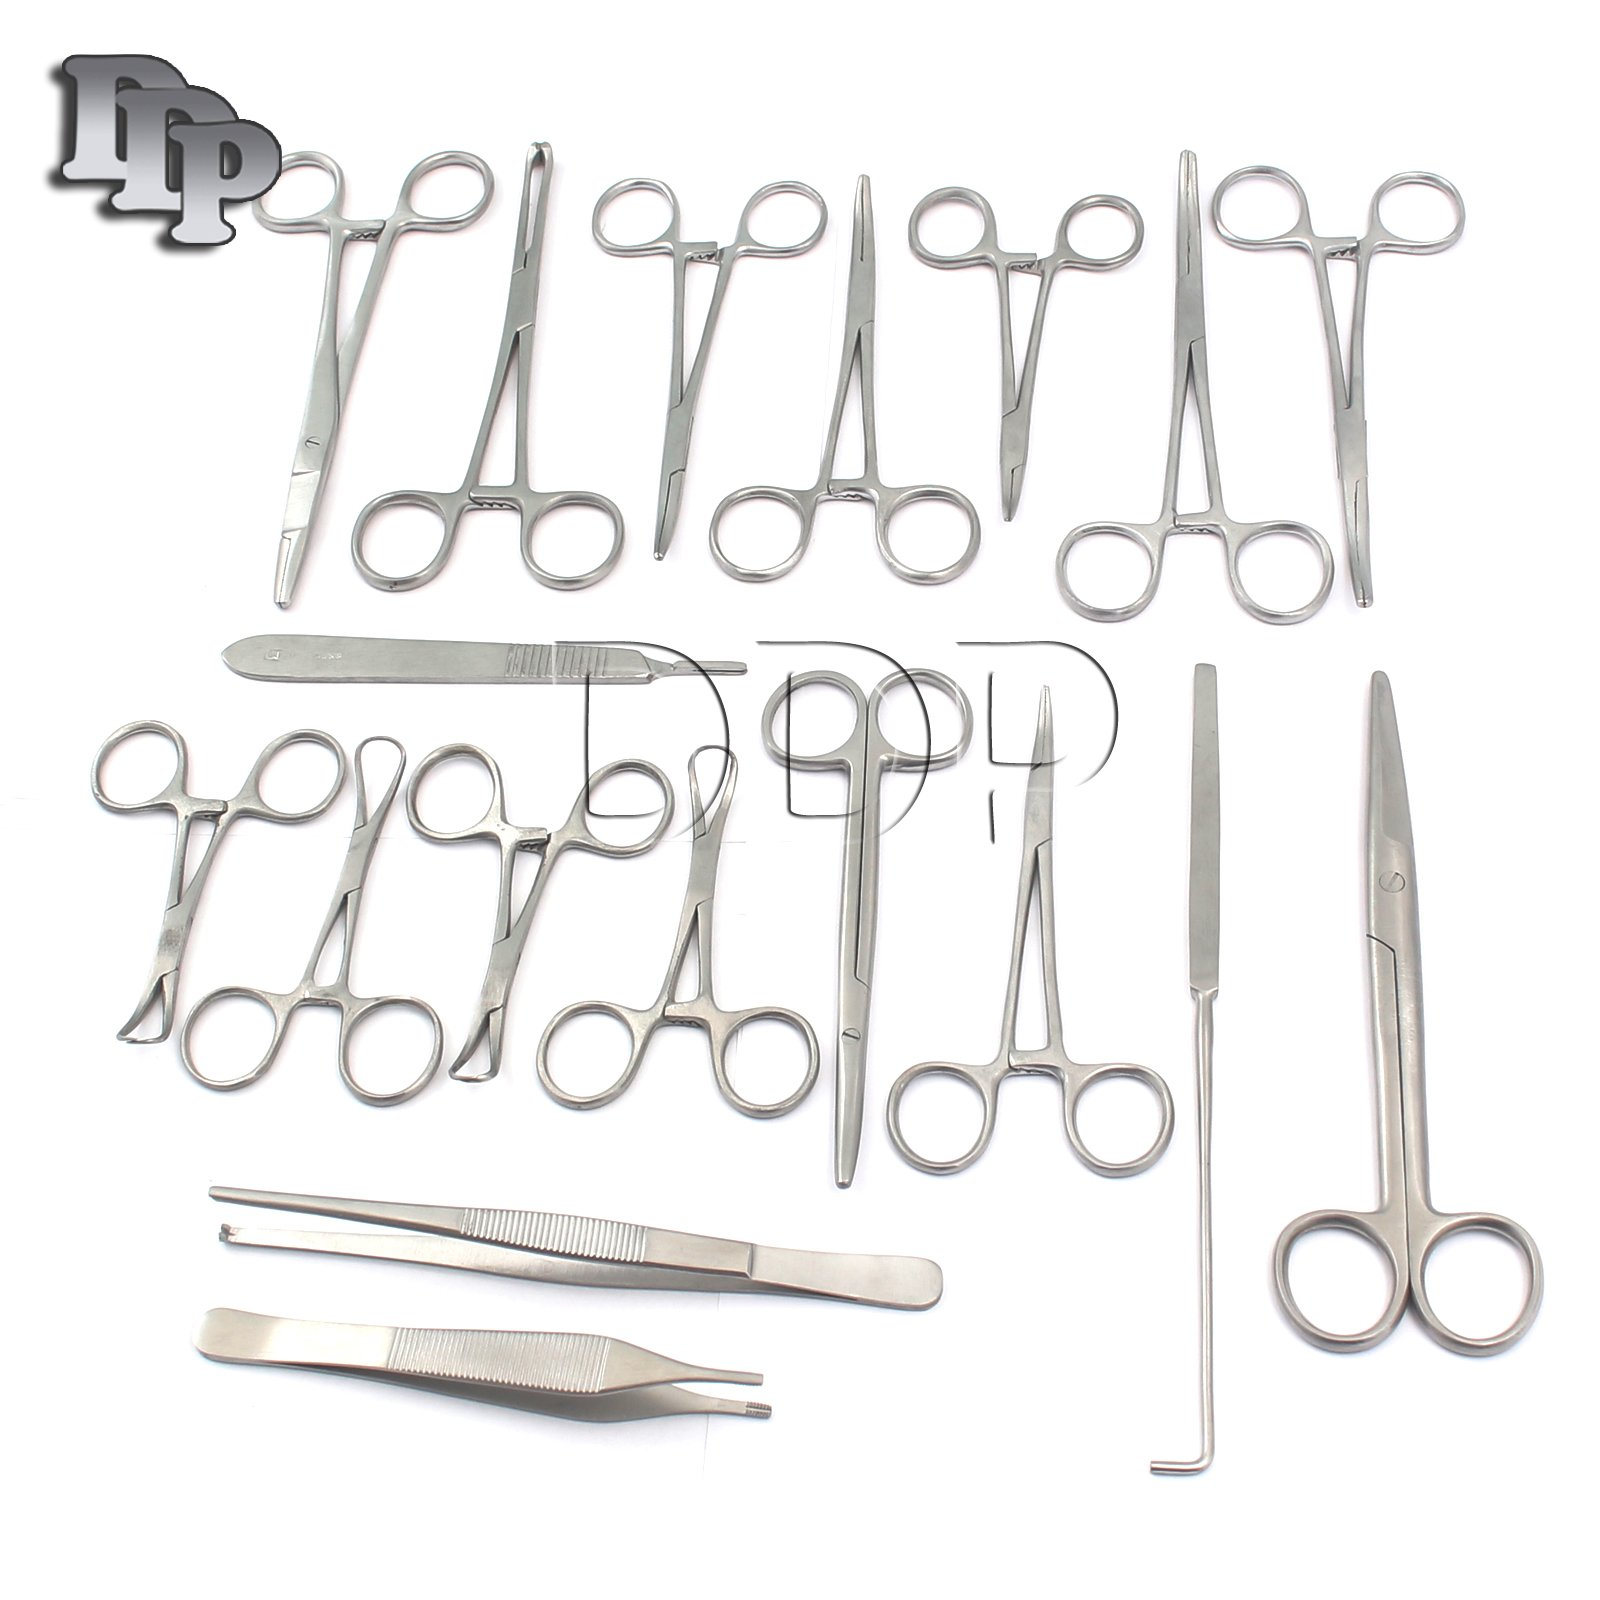 DDP GERMAN GRADE FELINE SPAY PACK 18 INSTRUMENTS by DDP